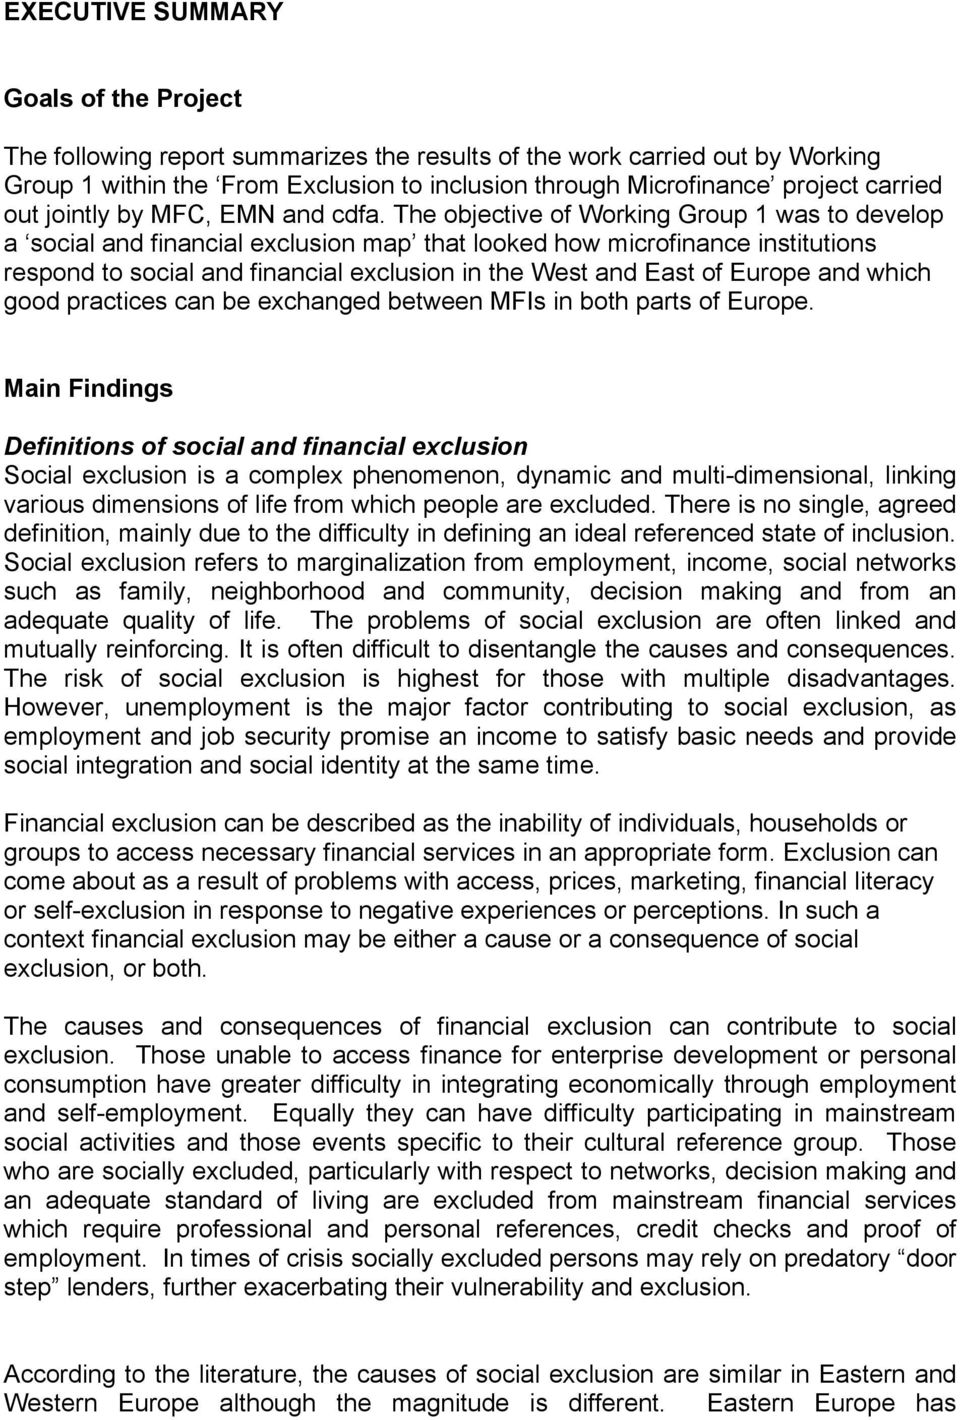 The objective of Working Group 1 was to develop a social and financial exclusion map that looked how microfinance institutions respond to social and financial exclusion in the West and East of Europe